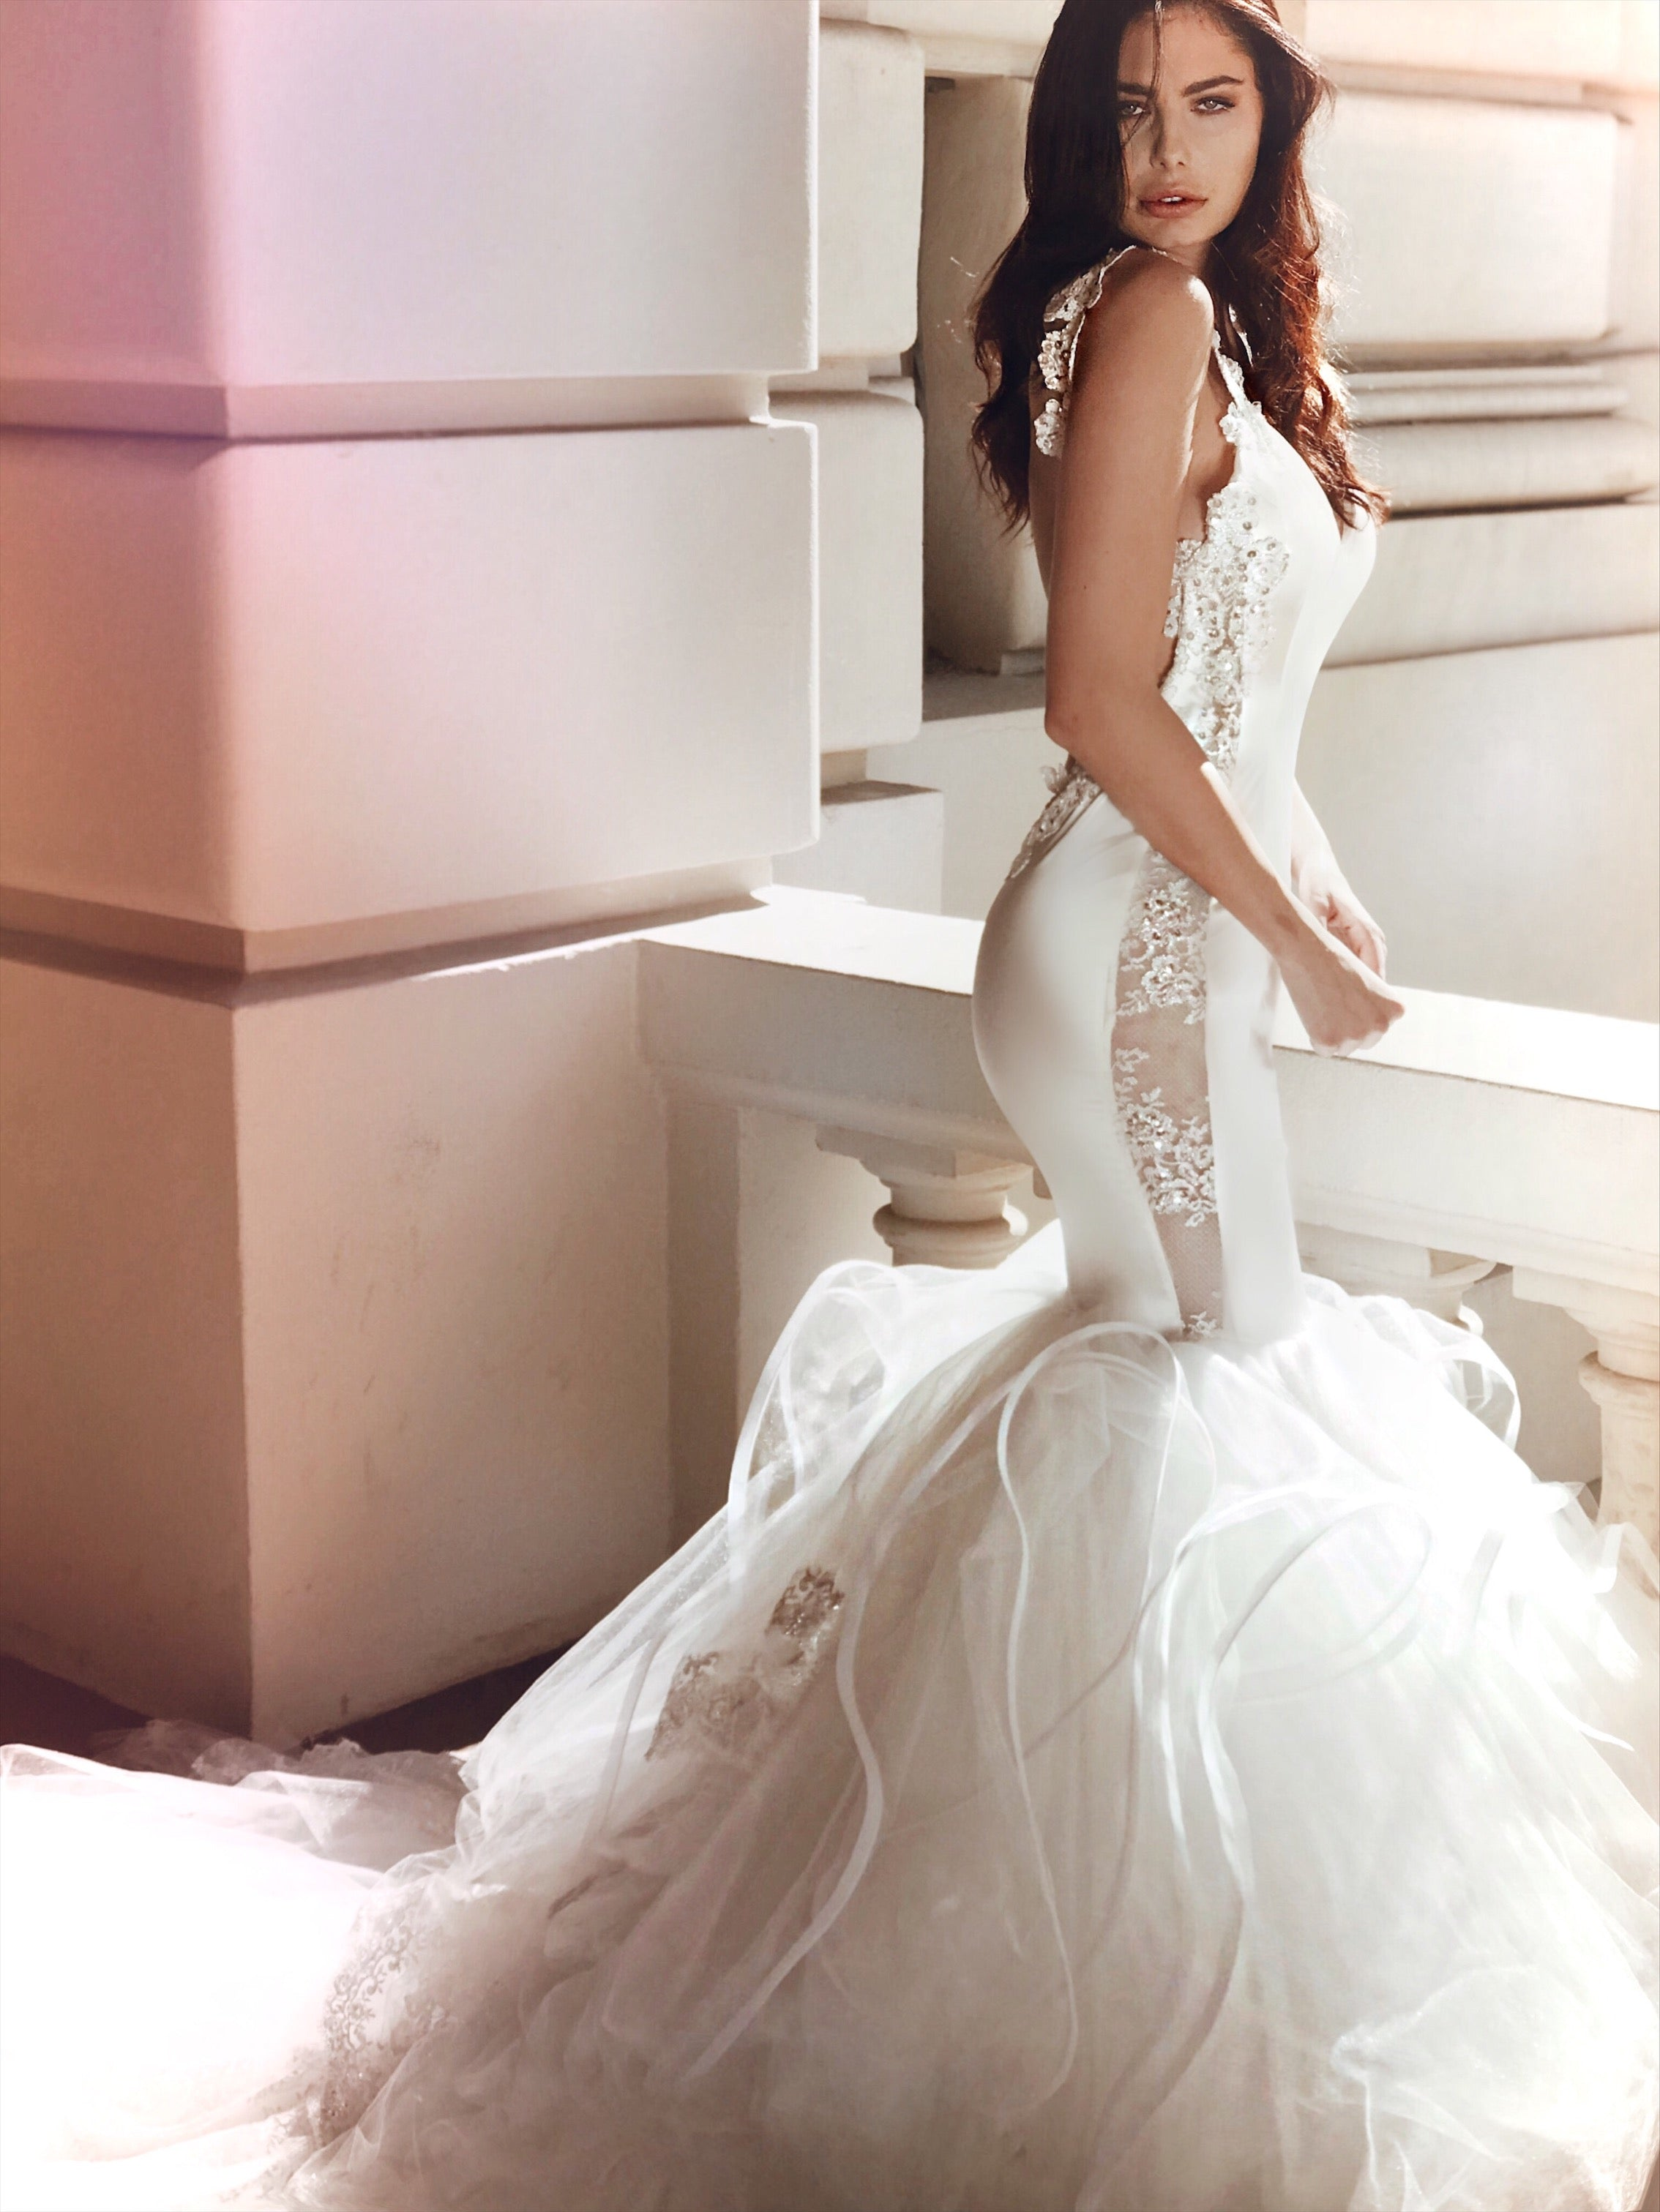 See through lace and satin illusion mermaid wedding dress by Lauren Elaine Bridal